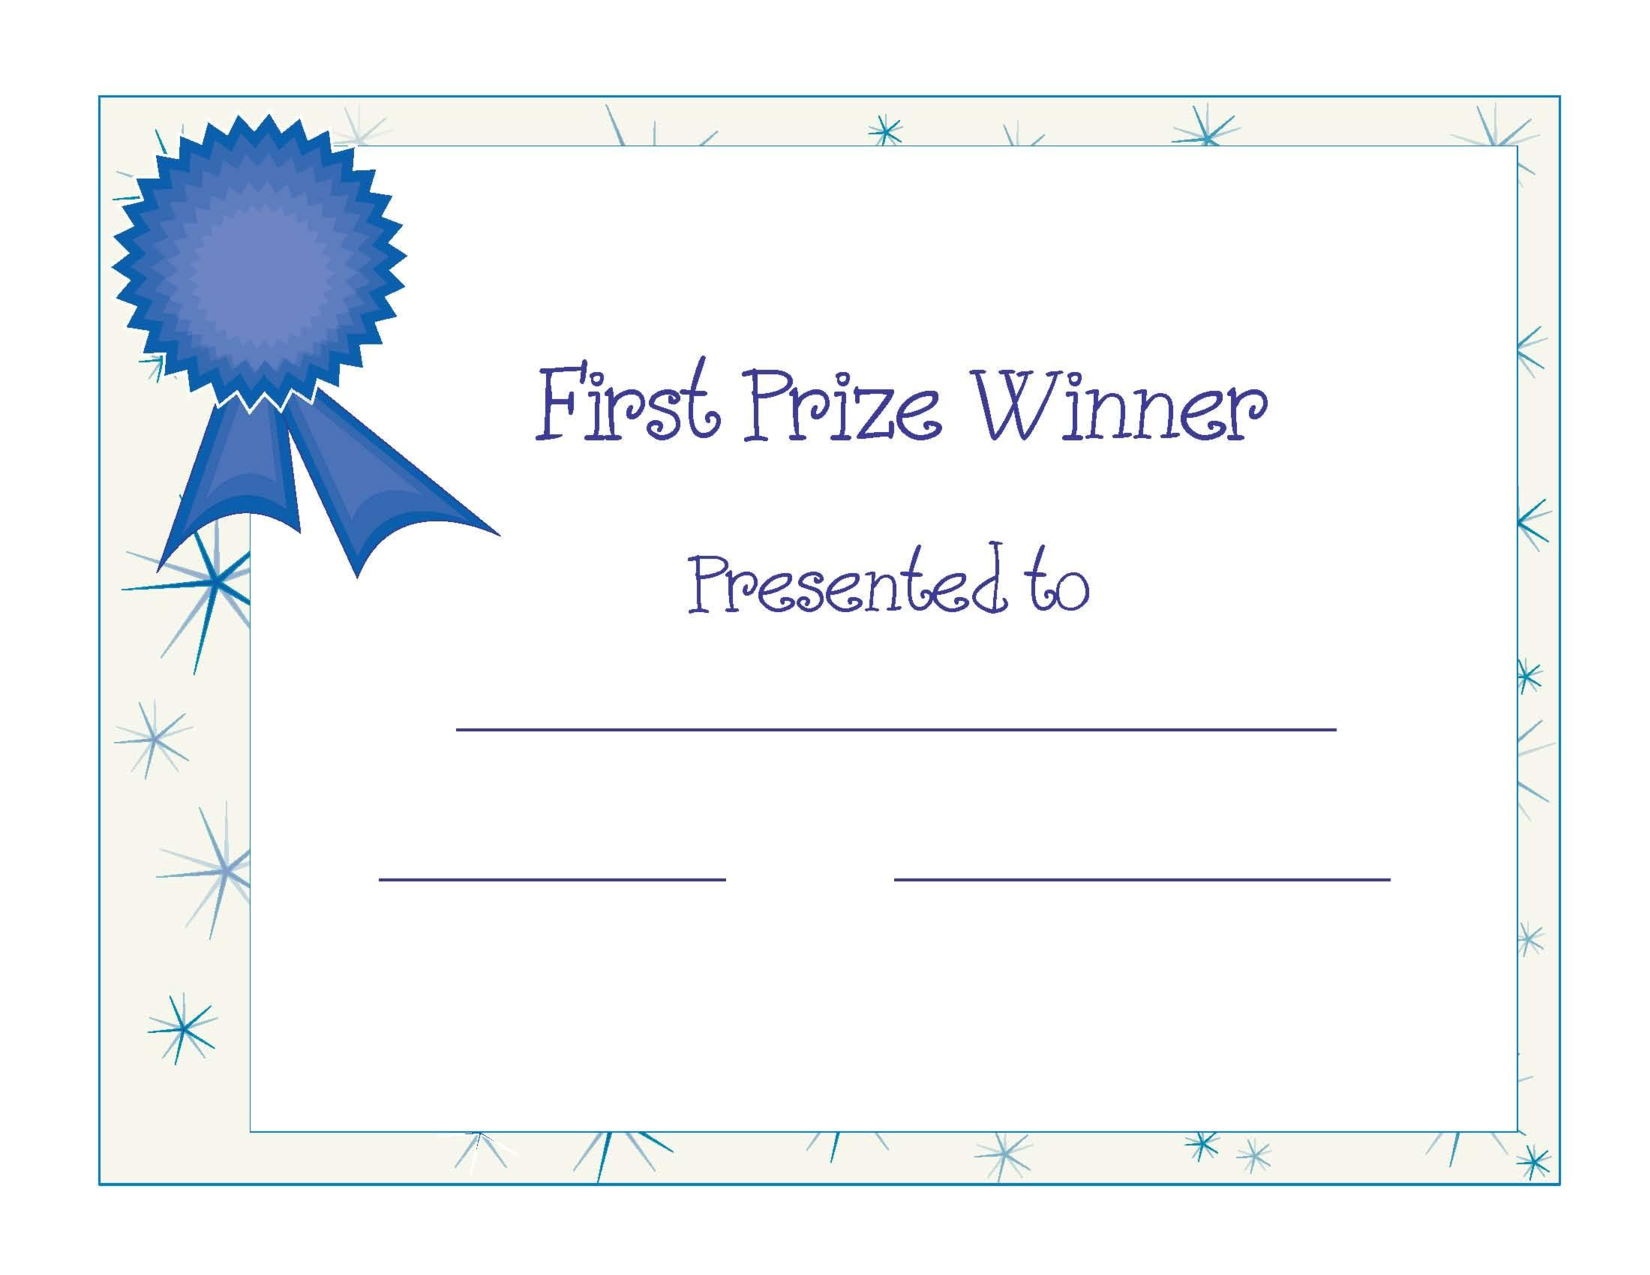 free printable award certificate template free printable first prize winner certificate award ppt - Free Printable Blank Award Certificate Templates